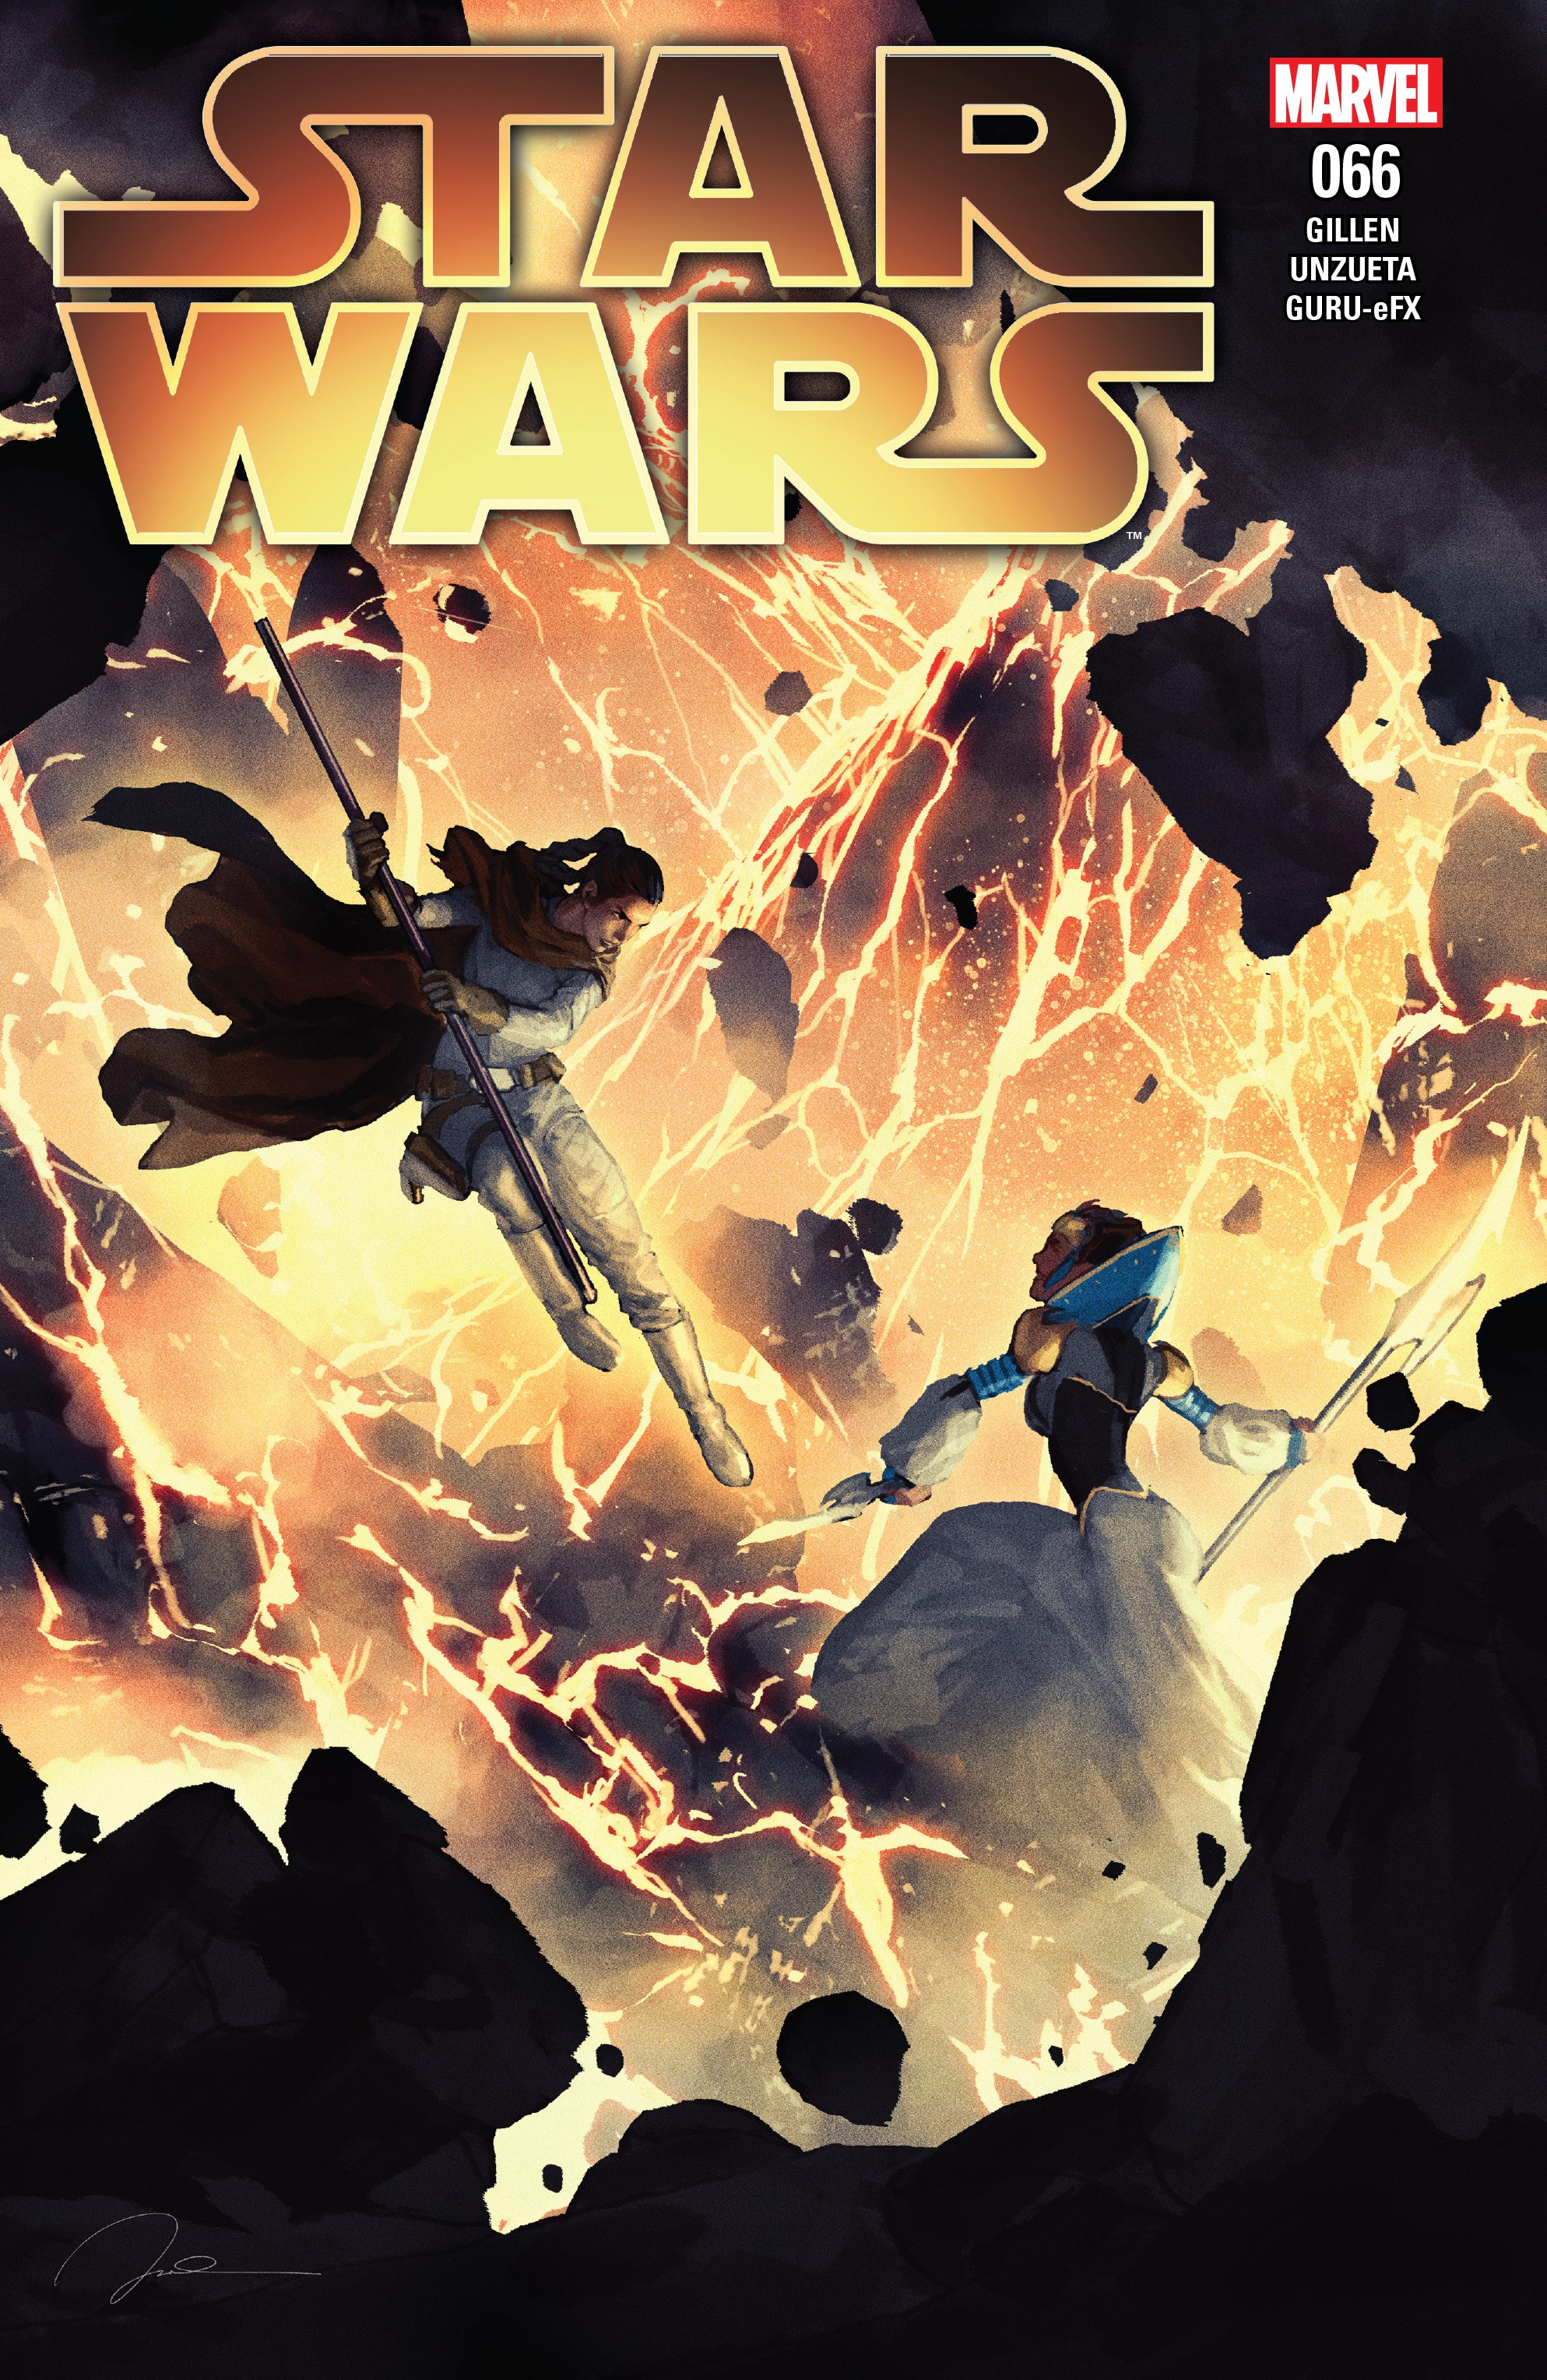 Star Wars (2015-): Chapter 66 - Page 1